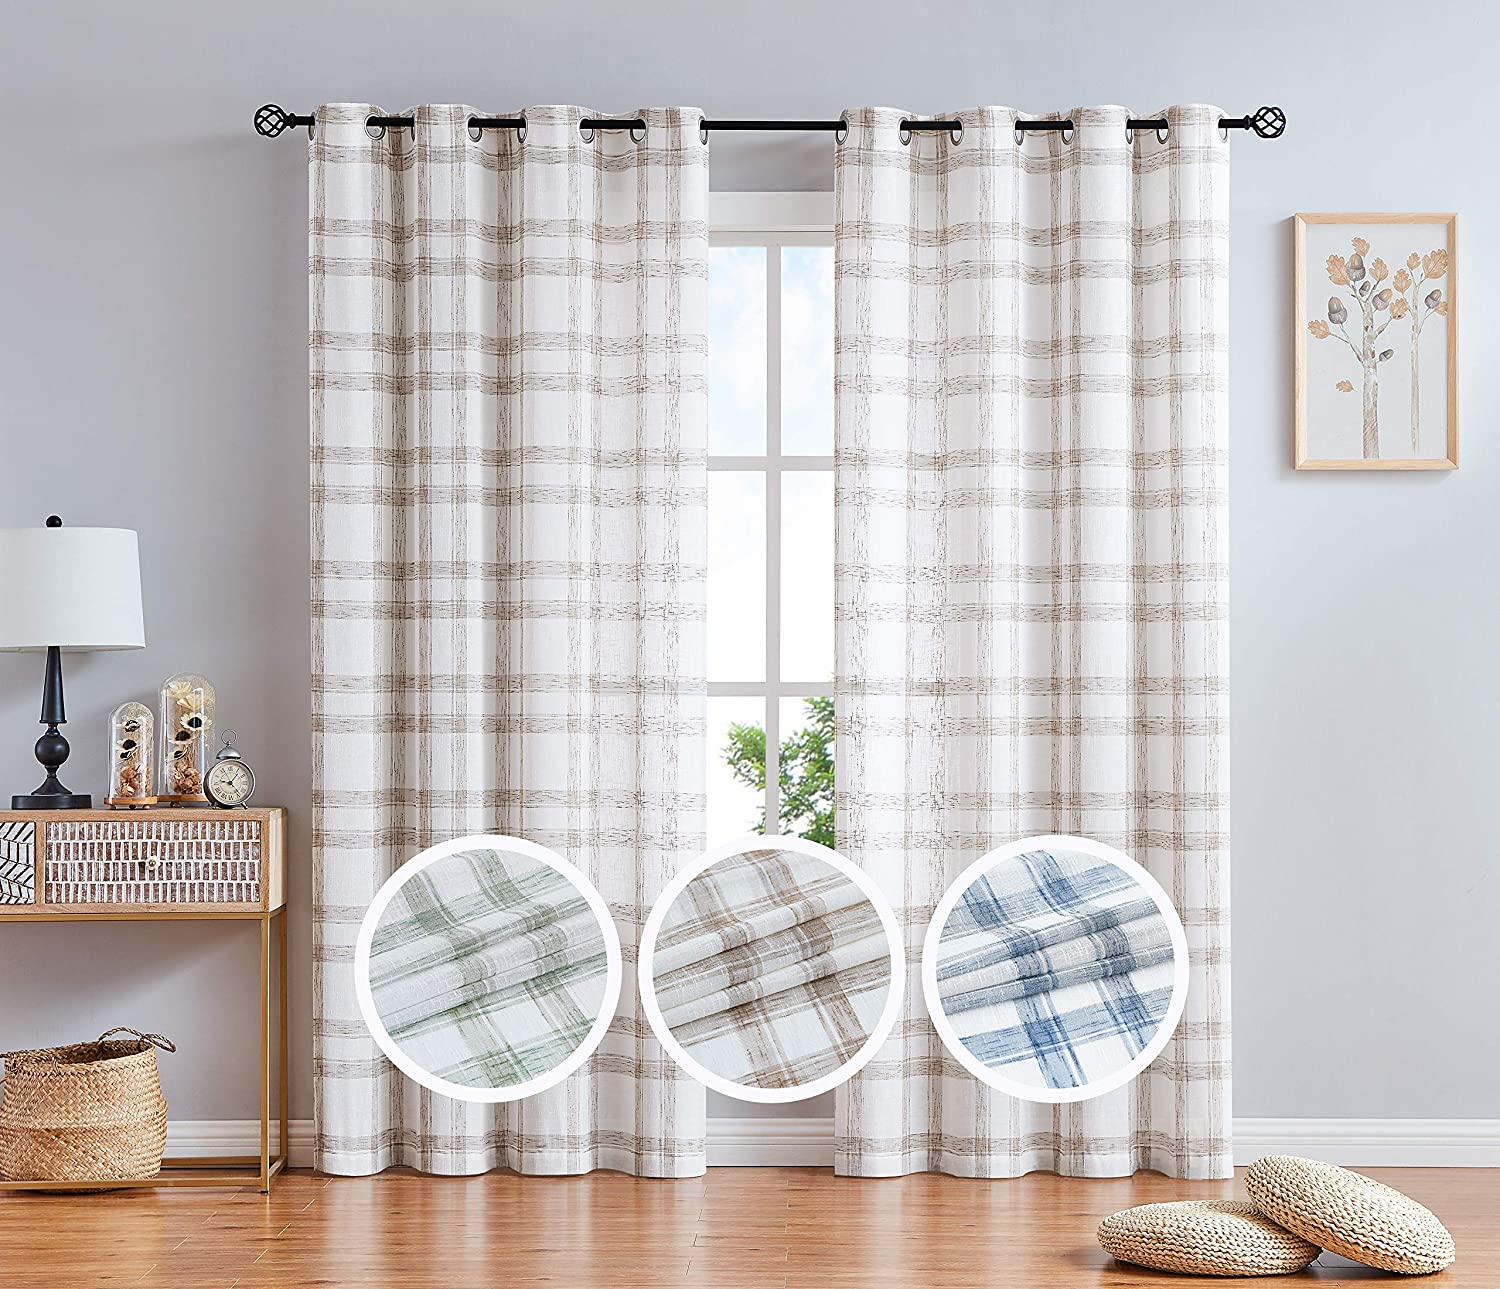 Linen Window Curtain Panel Pairs For Living Room 63 Long Geometric Check Grommets Top Semi Sheer Window Treatment Heavy Rustic Farmhouse Style Drapes For Bedroom 54 X63 X2 Brown White Amazon Ca Home Kitchen